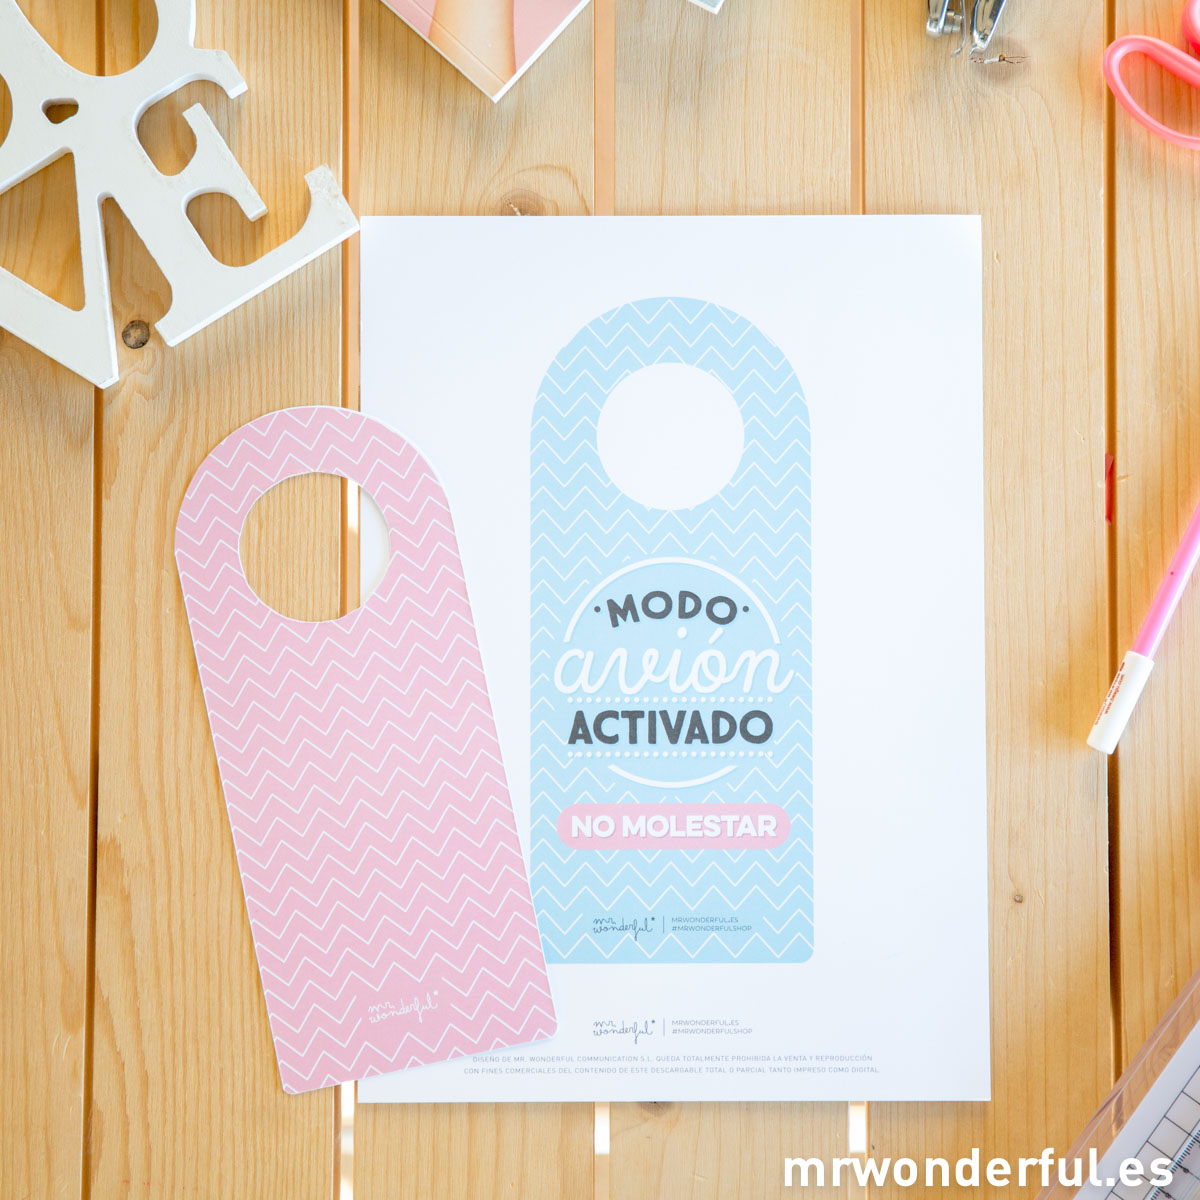 mrwonderful-descargable-san-valentin-modo-avion-2016-15